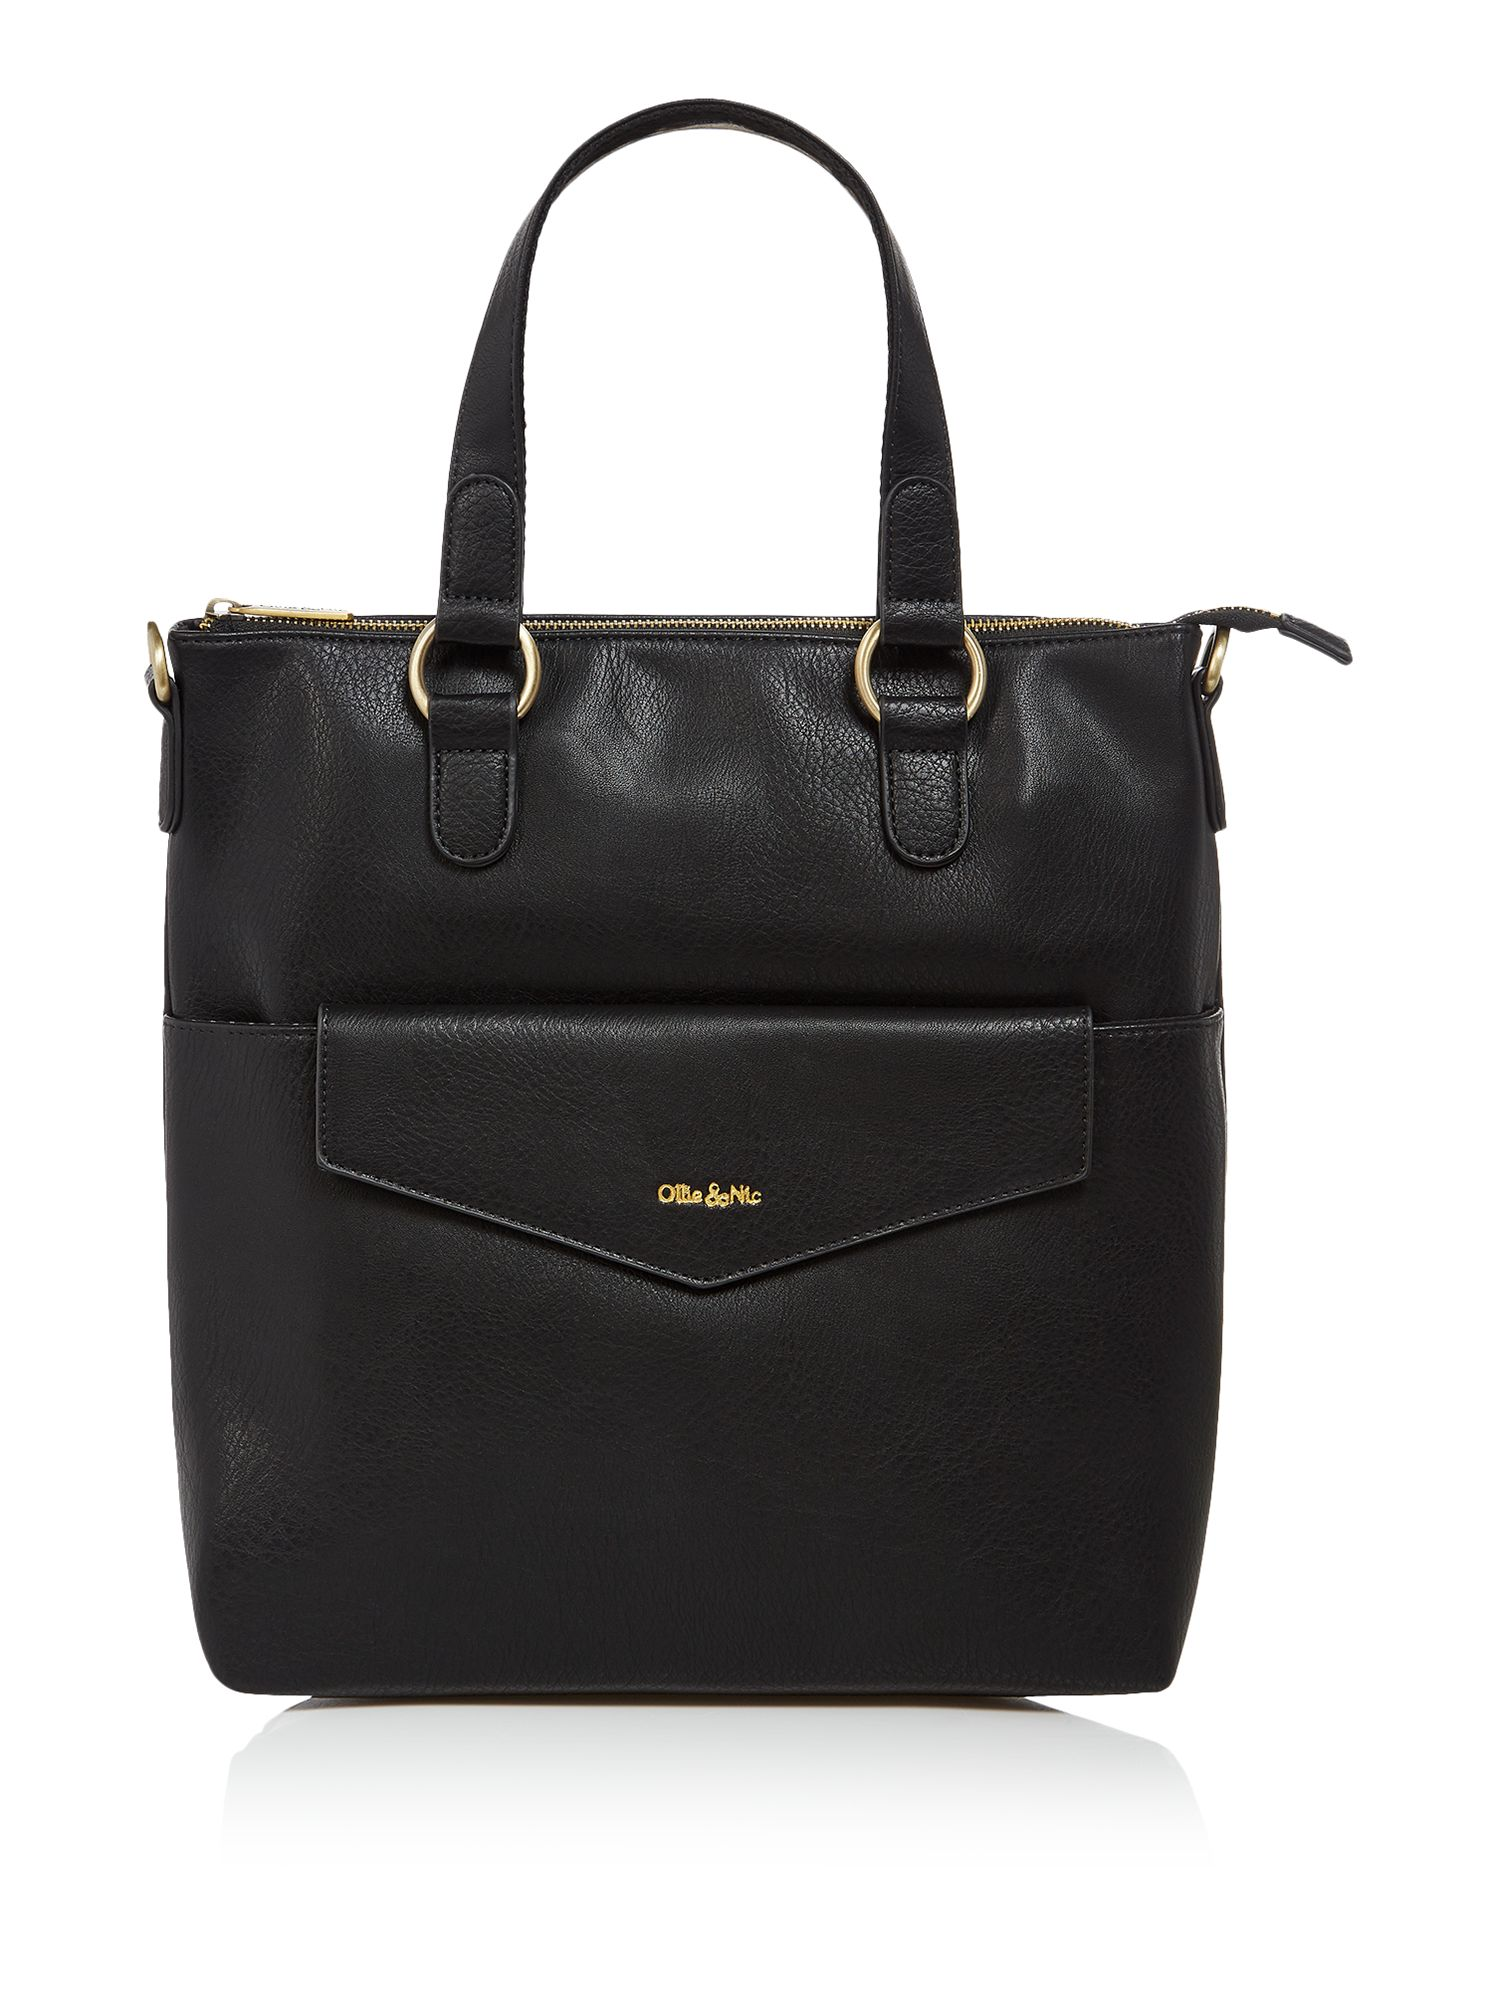 Ollie & Nic Eddy tote bag, Black